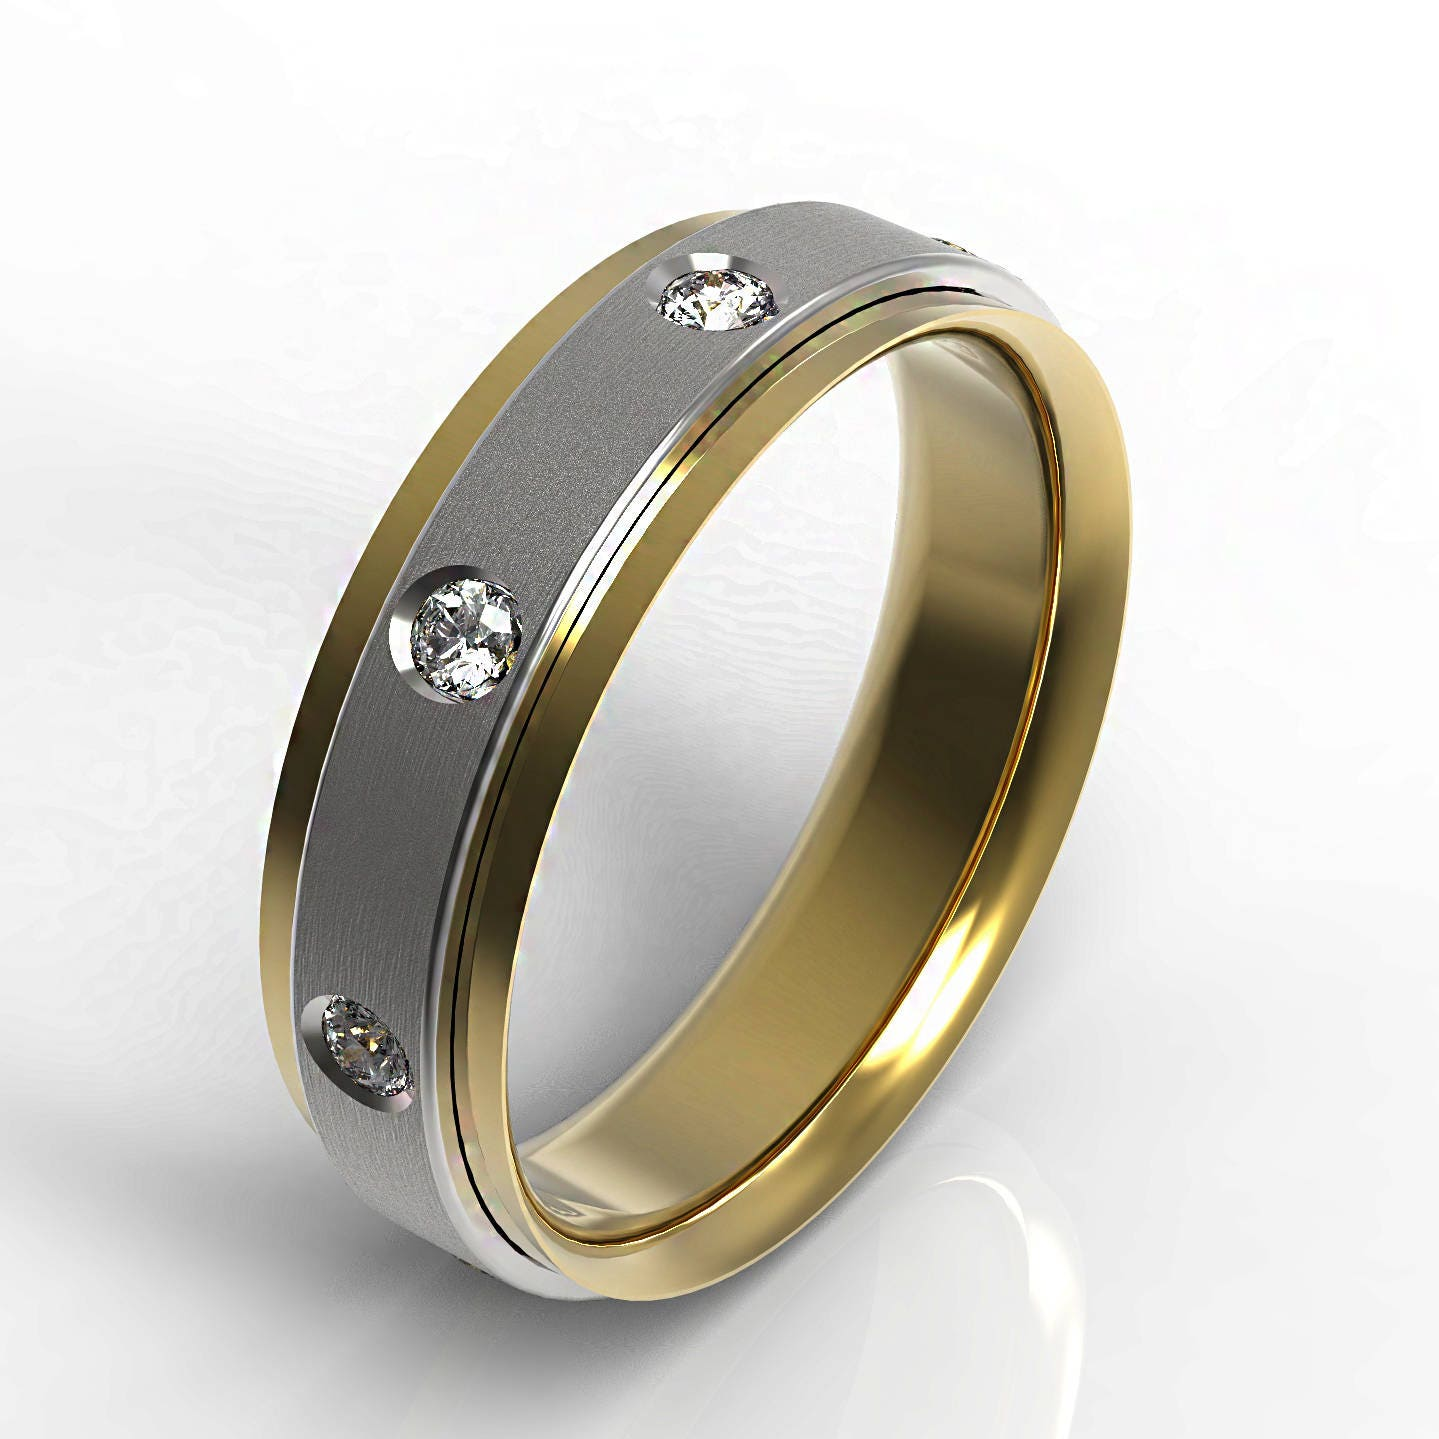 Double layer 14 K white and yellow gold wedding band bezel set